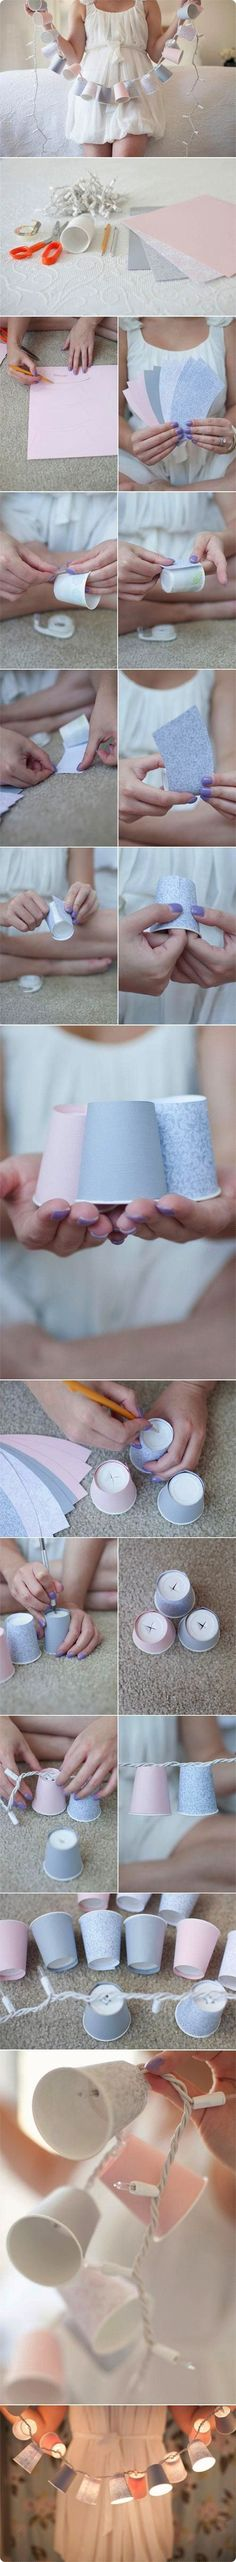 DIY lights. Seriously this is precious. Must do!